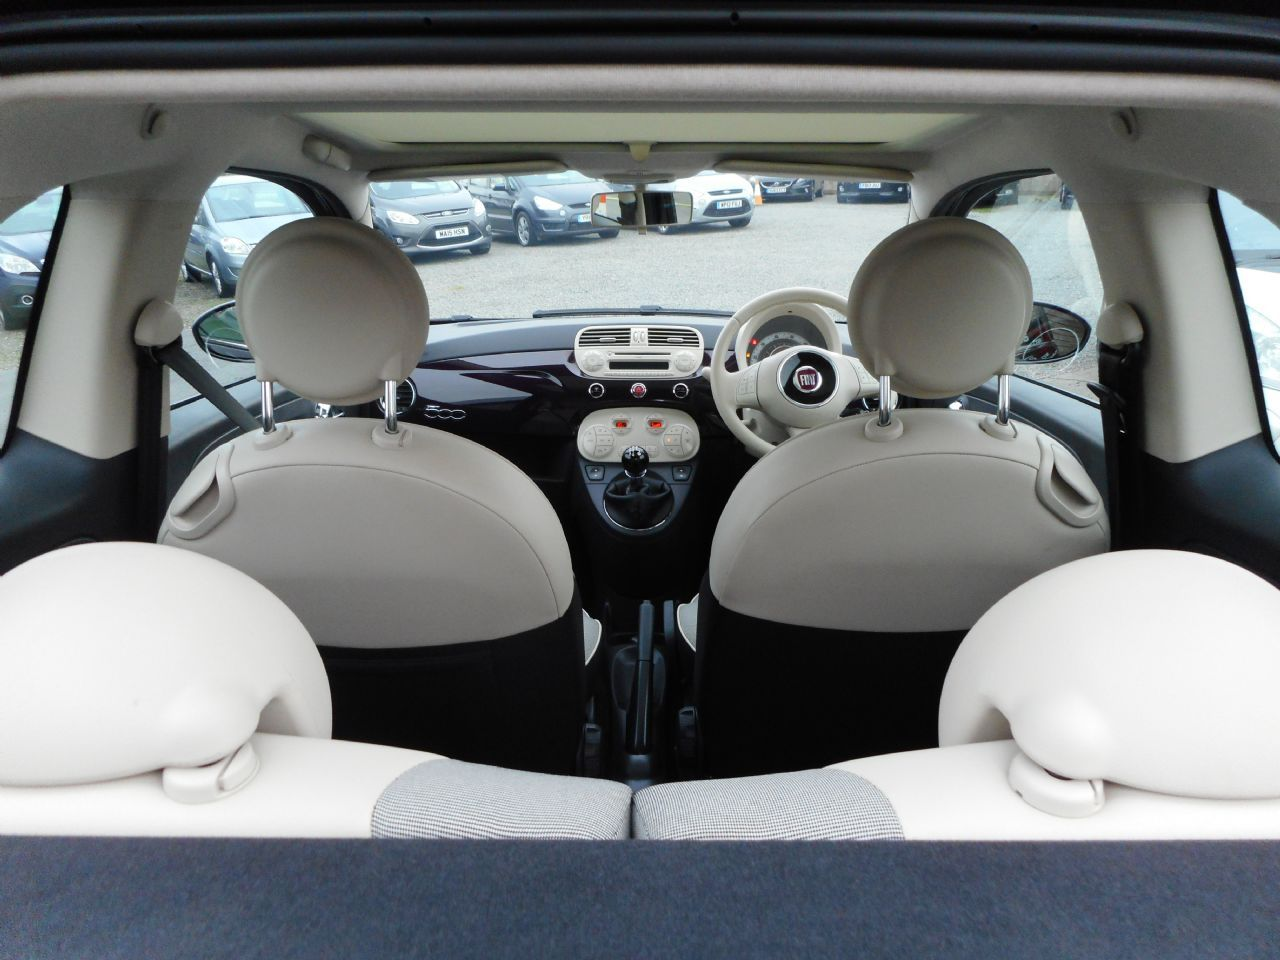 FIAT 500 1.2i Lounge S/S (2015) - Picture 7